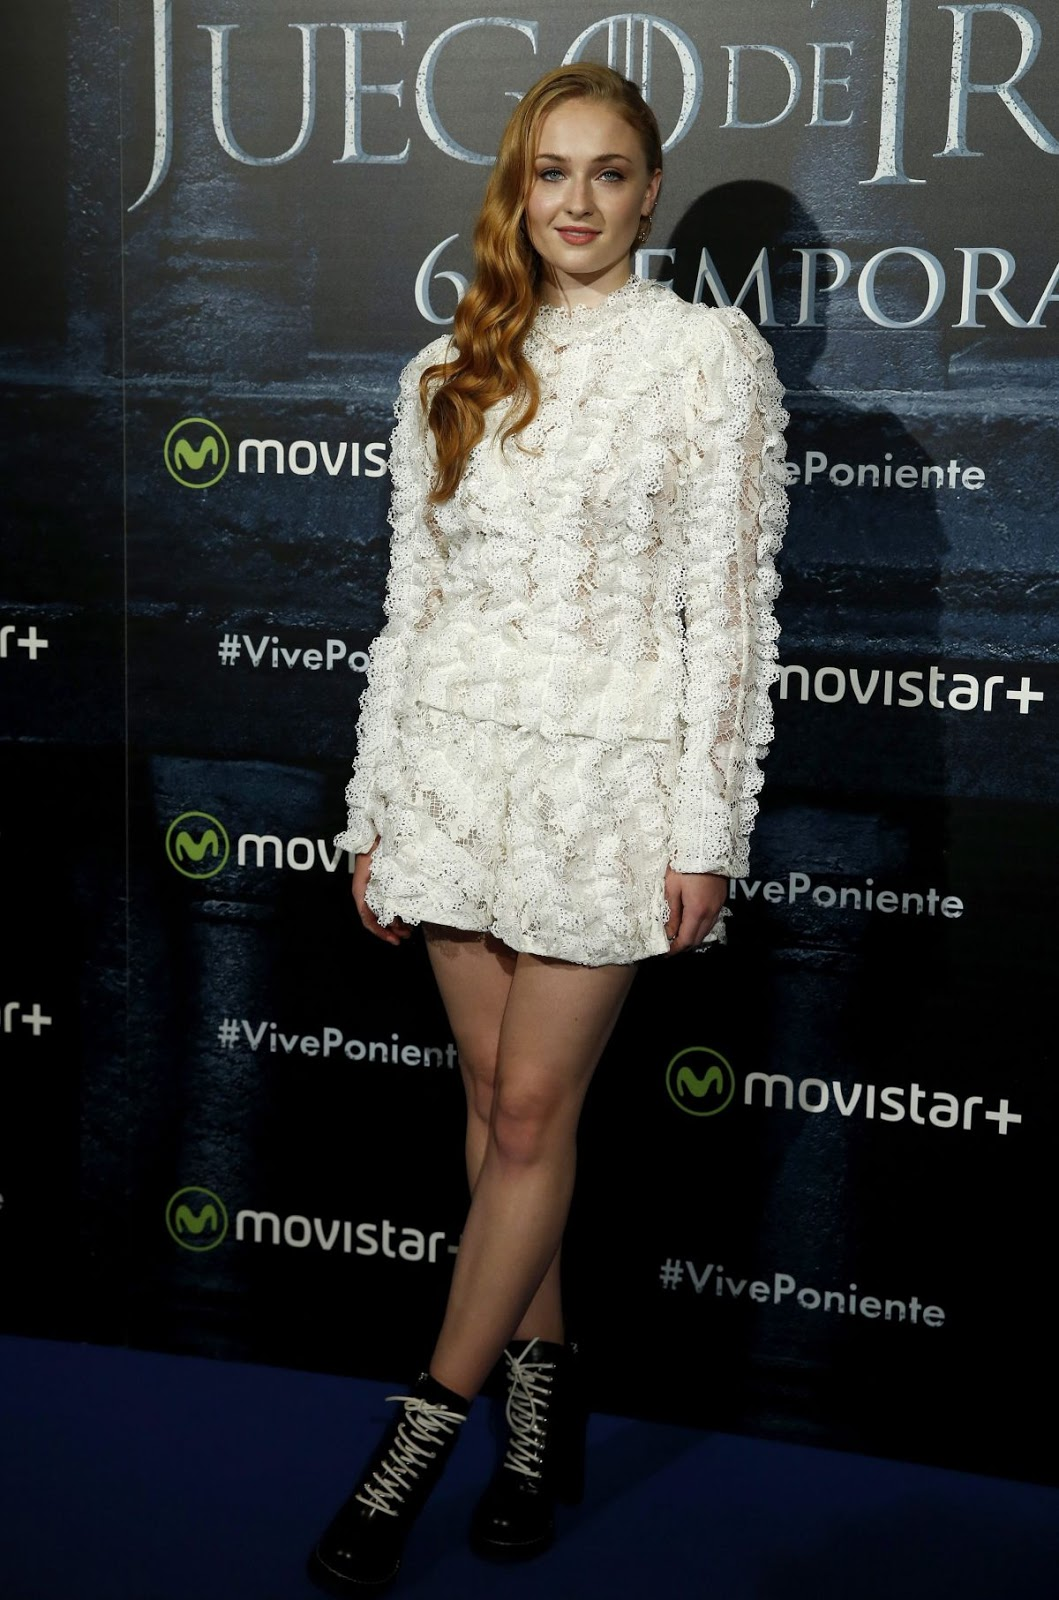 'Alone' actress Sophie Turner at Game of Thrones Fan Event in Madrid